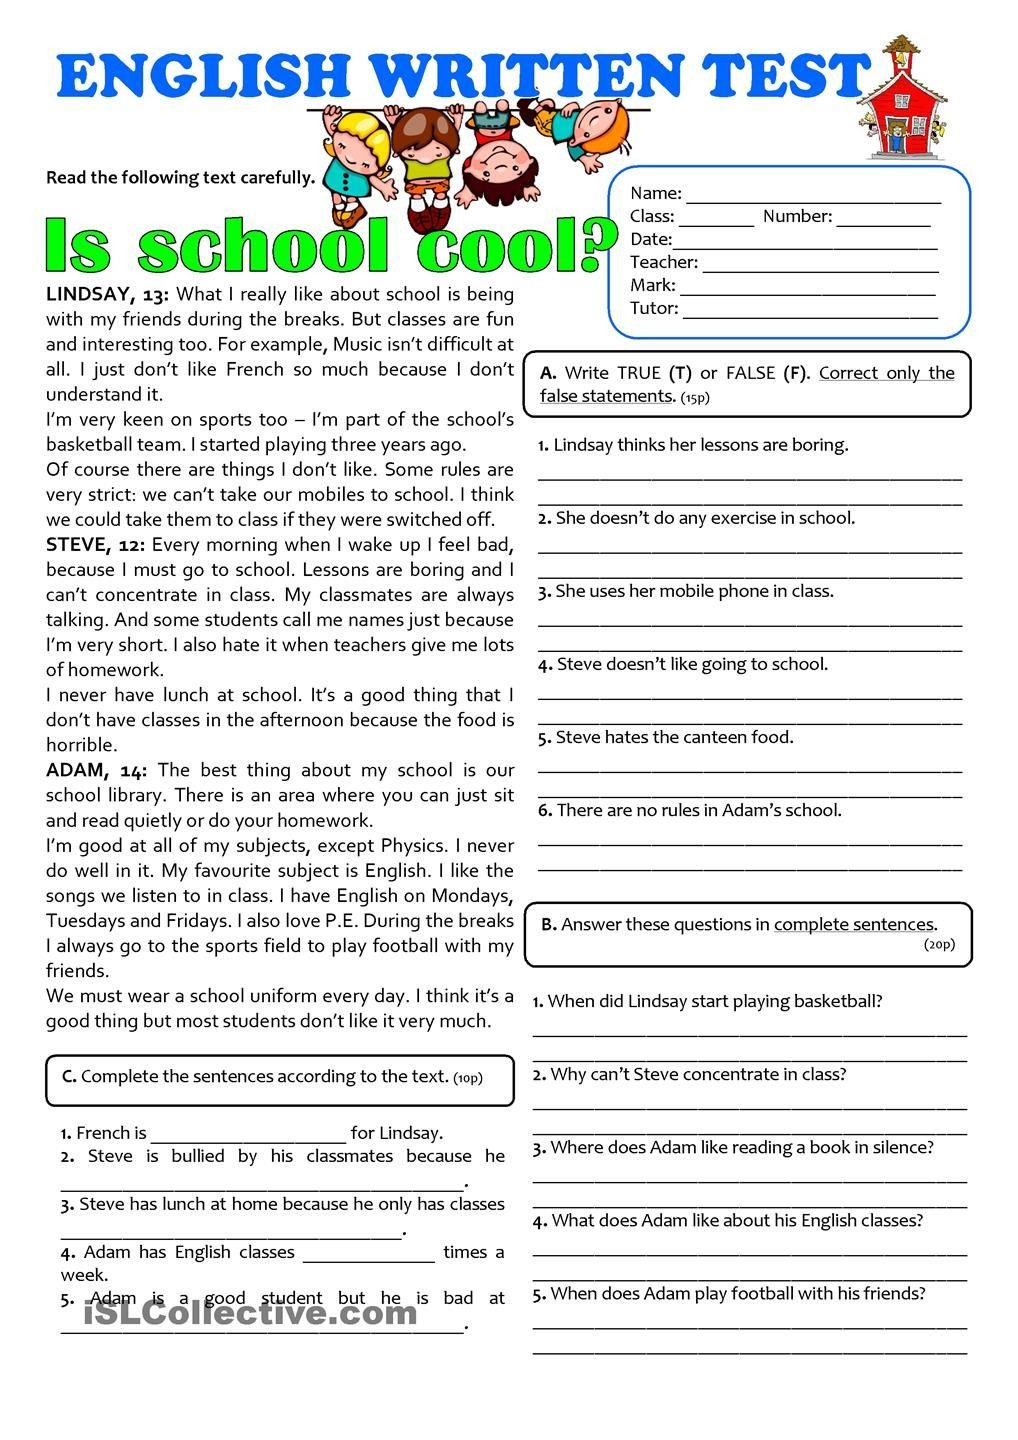 Free 7th Grade Reading Worksheets is School Cool 7th Grade Test